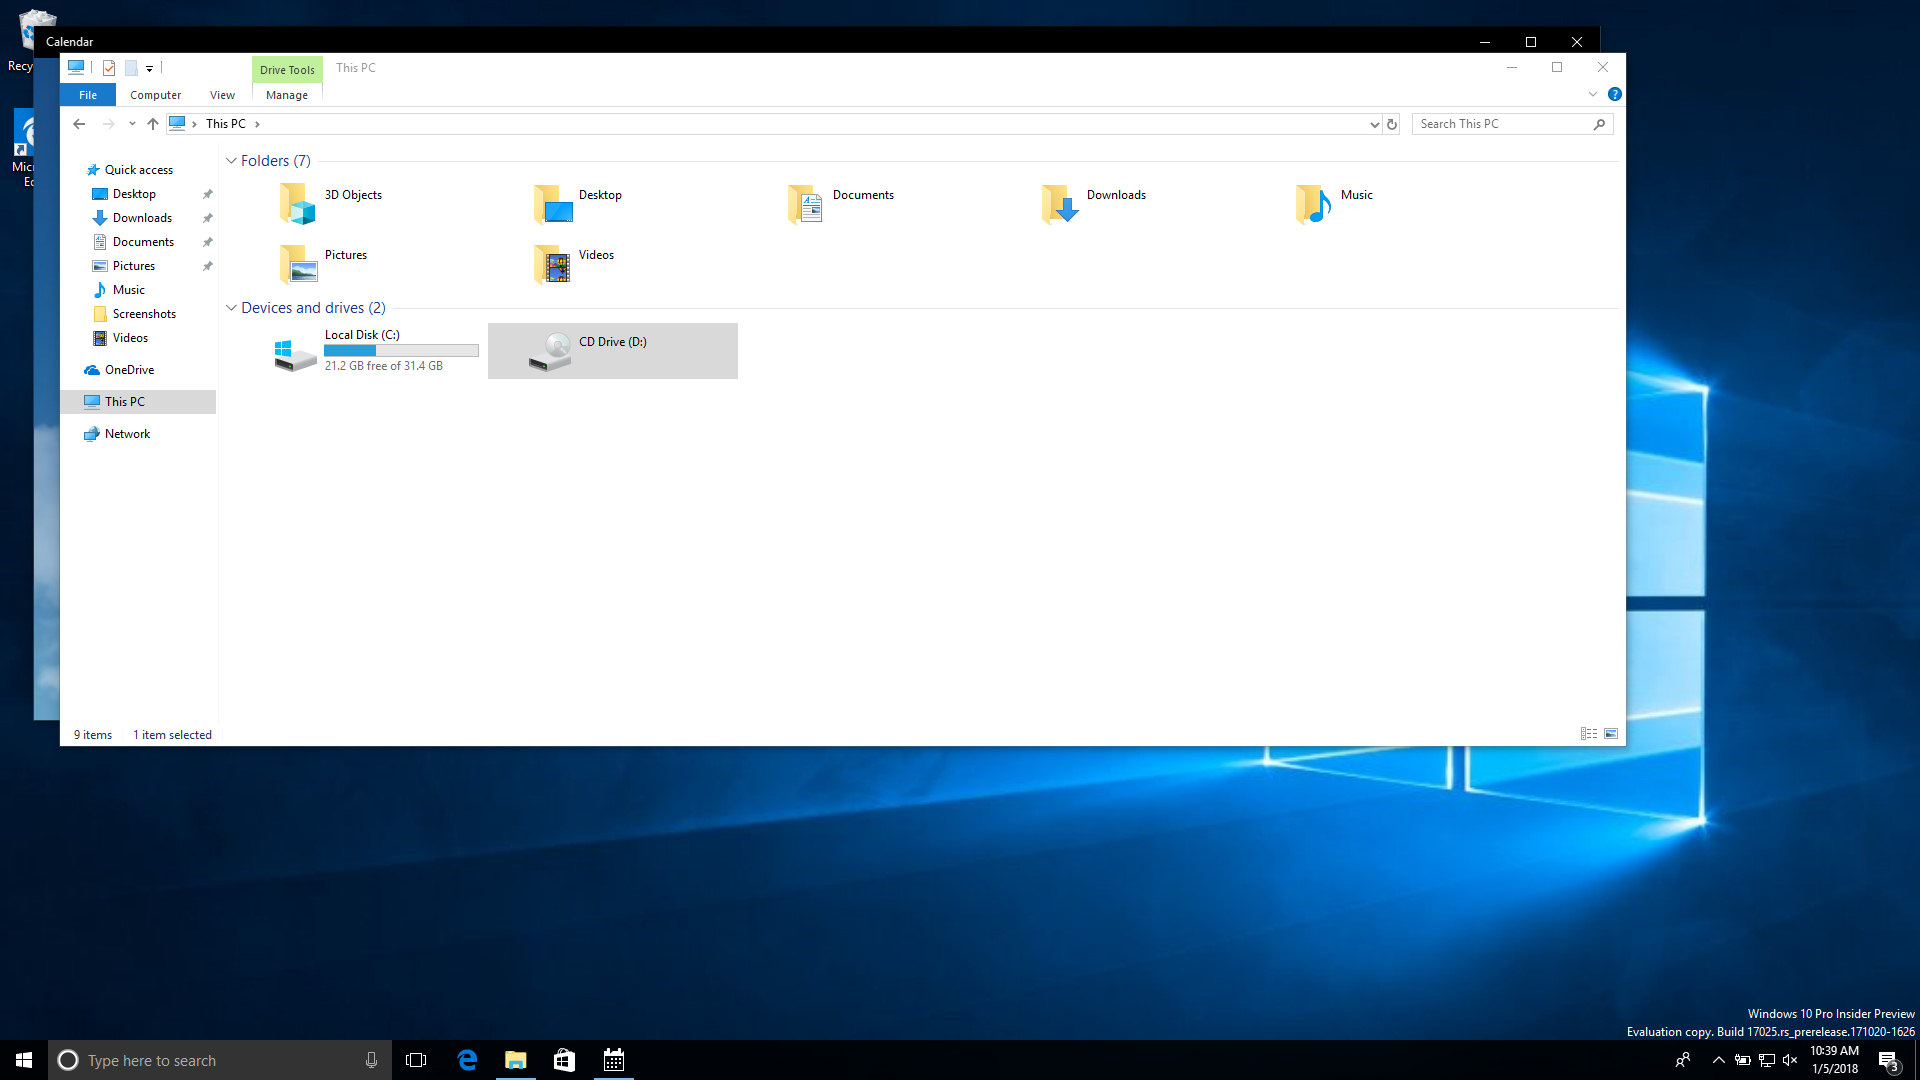 how to make pages side by side on windows 10